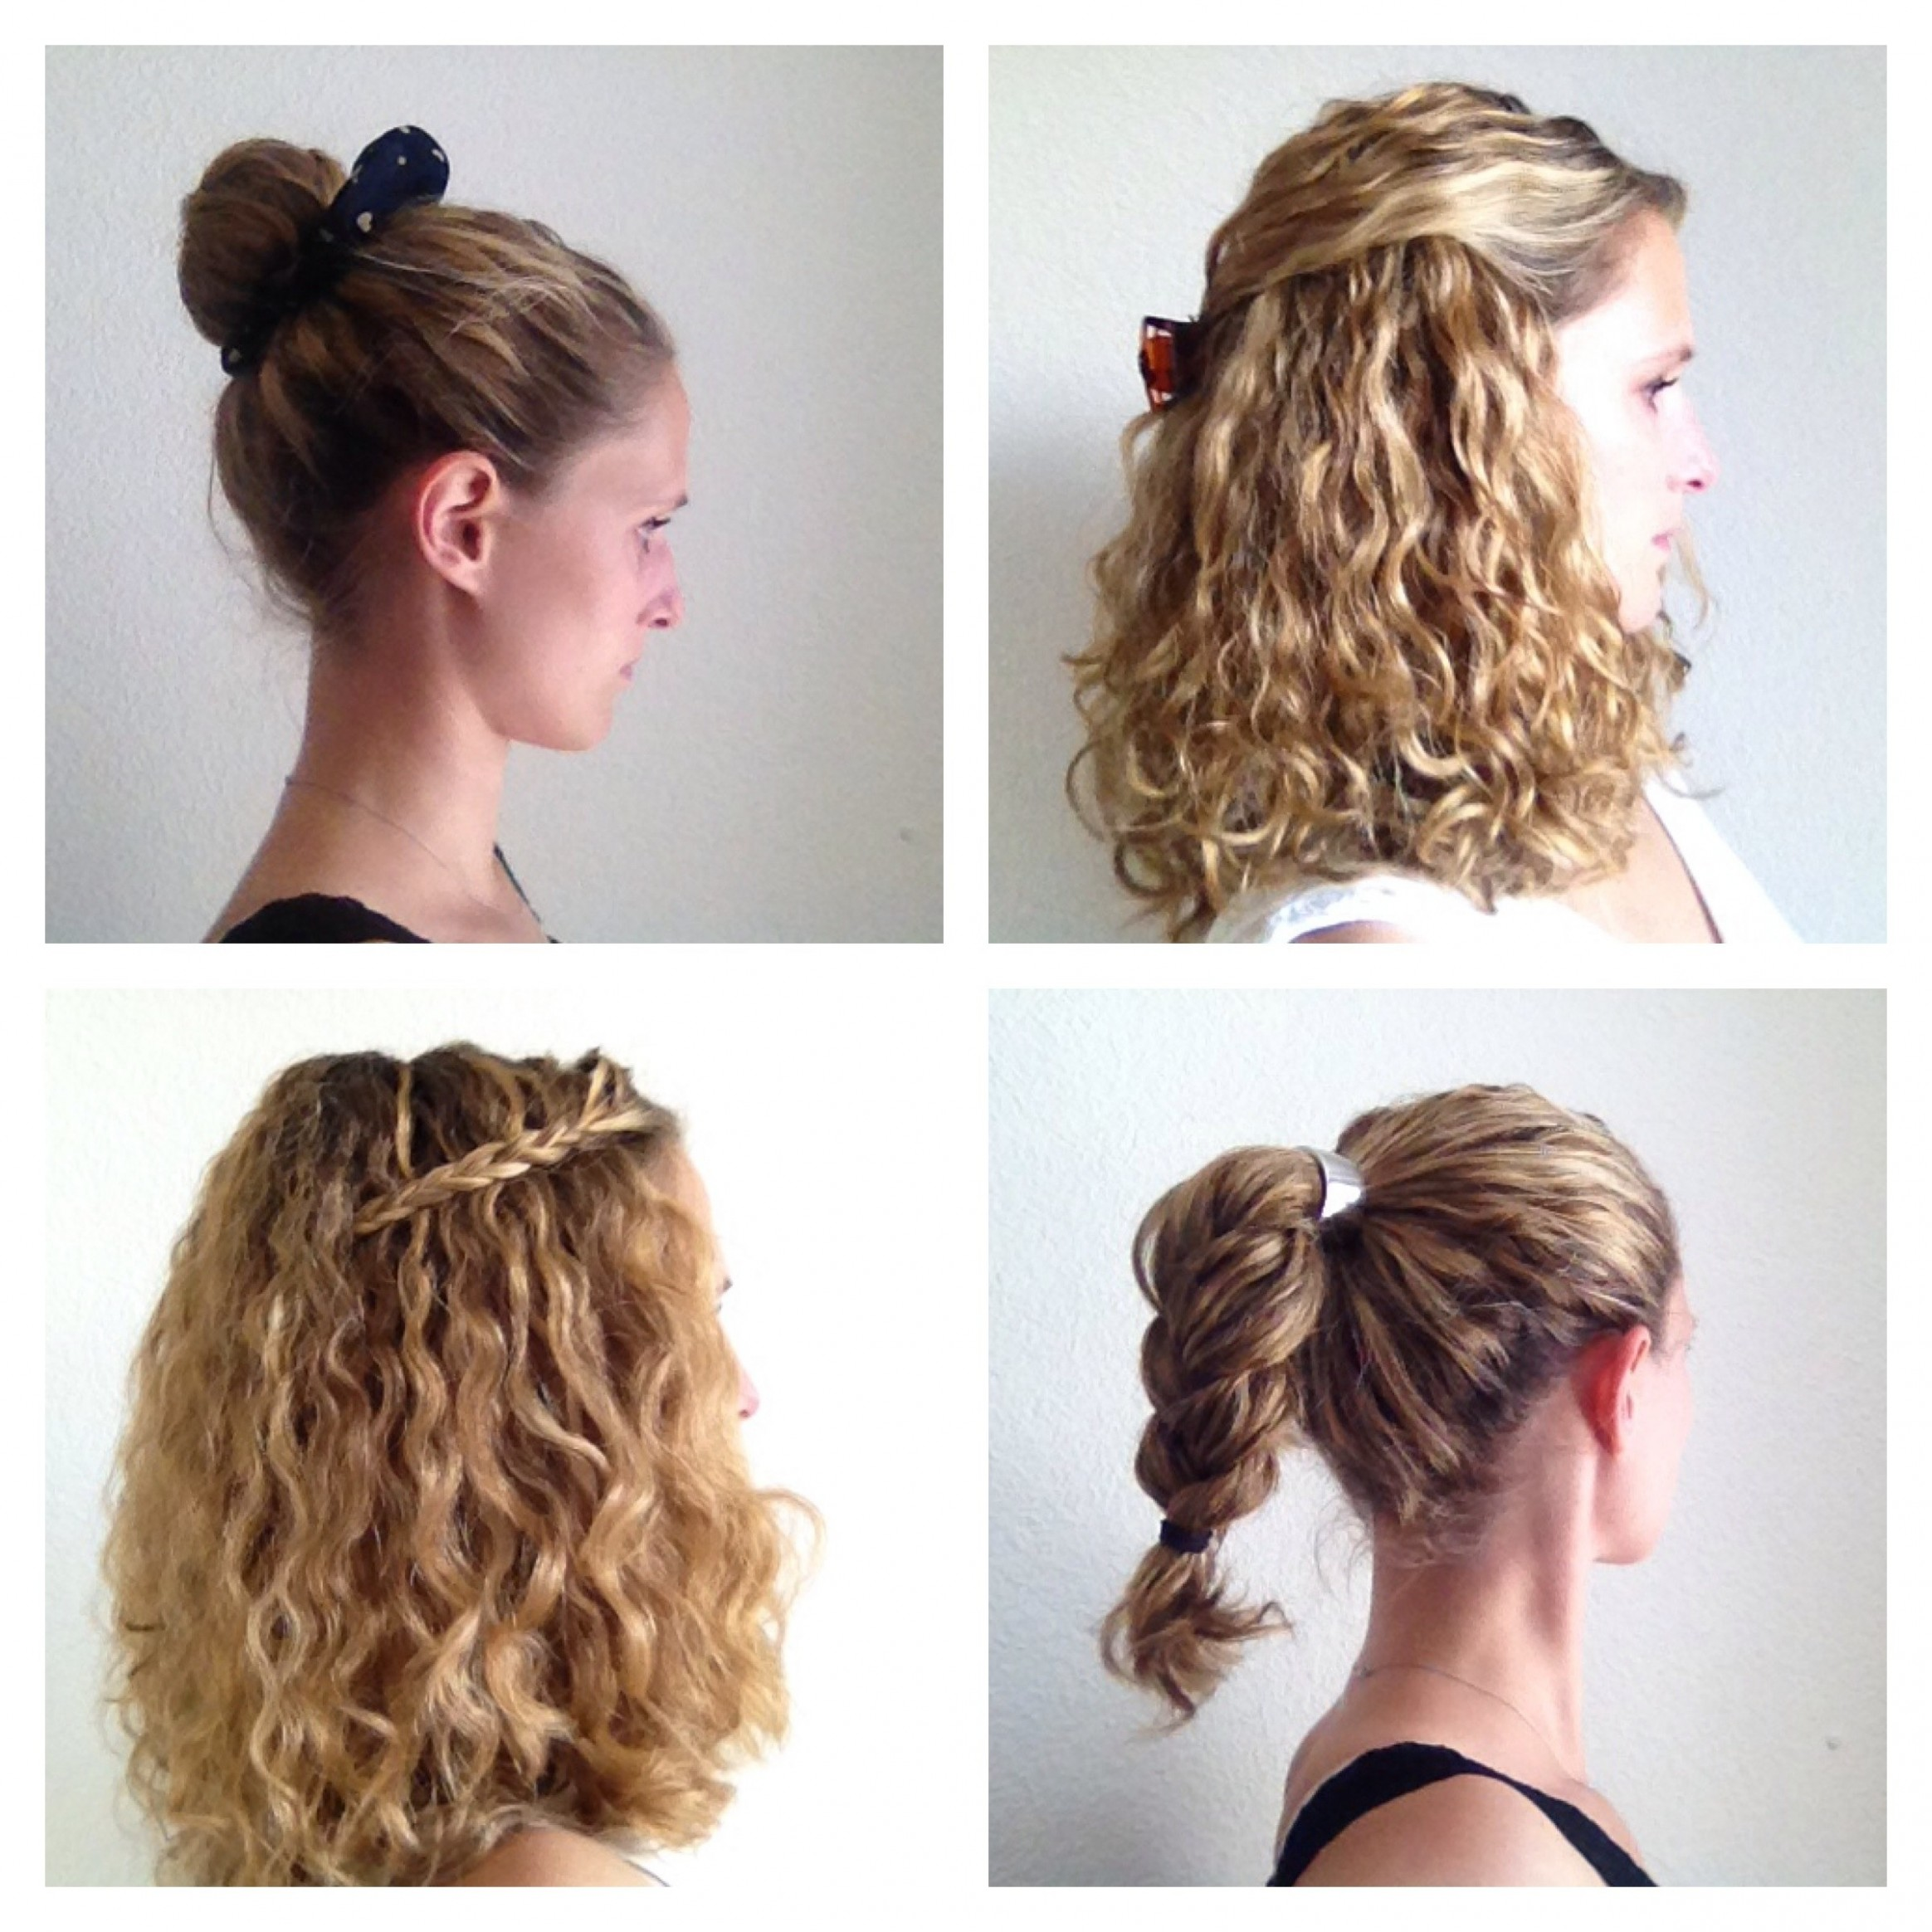 Easy Hairstyles For Curly Hair Best Curly Hairstyles Easy Hairstyles For Long Curly Hair